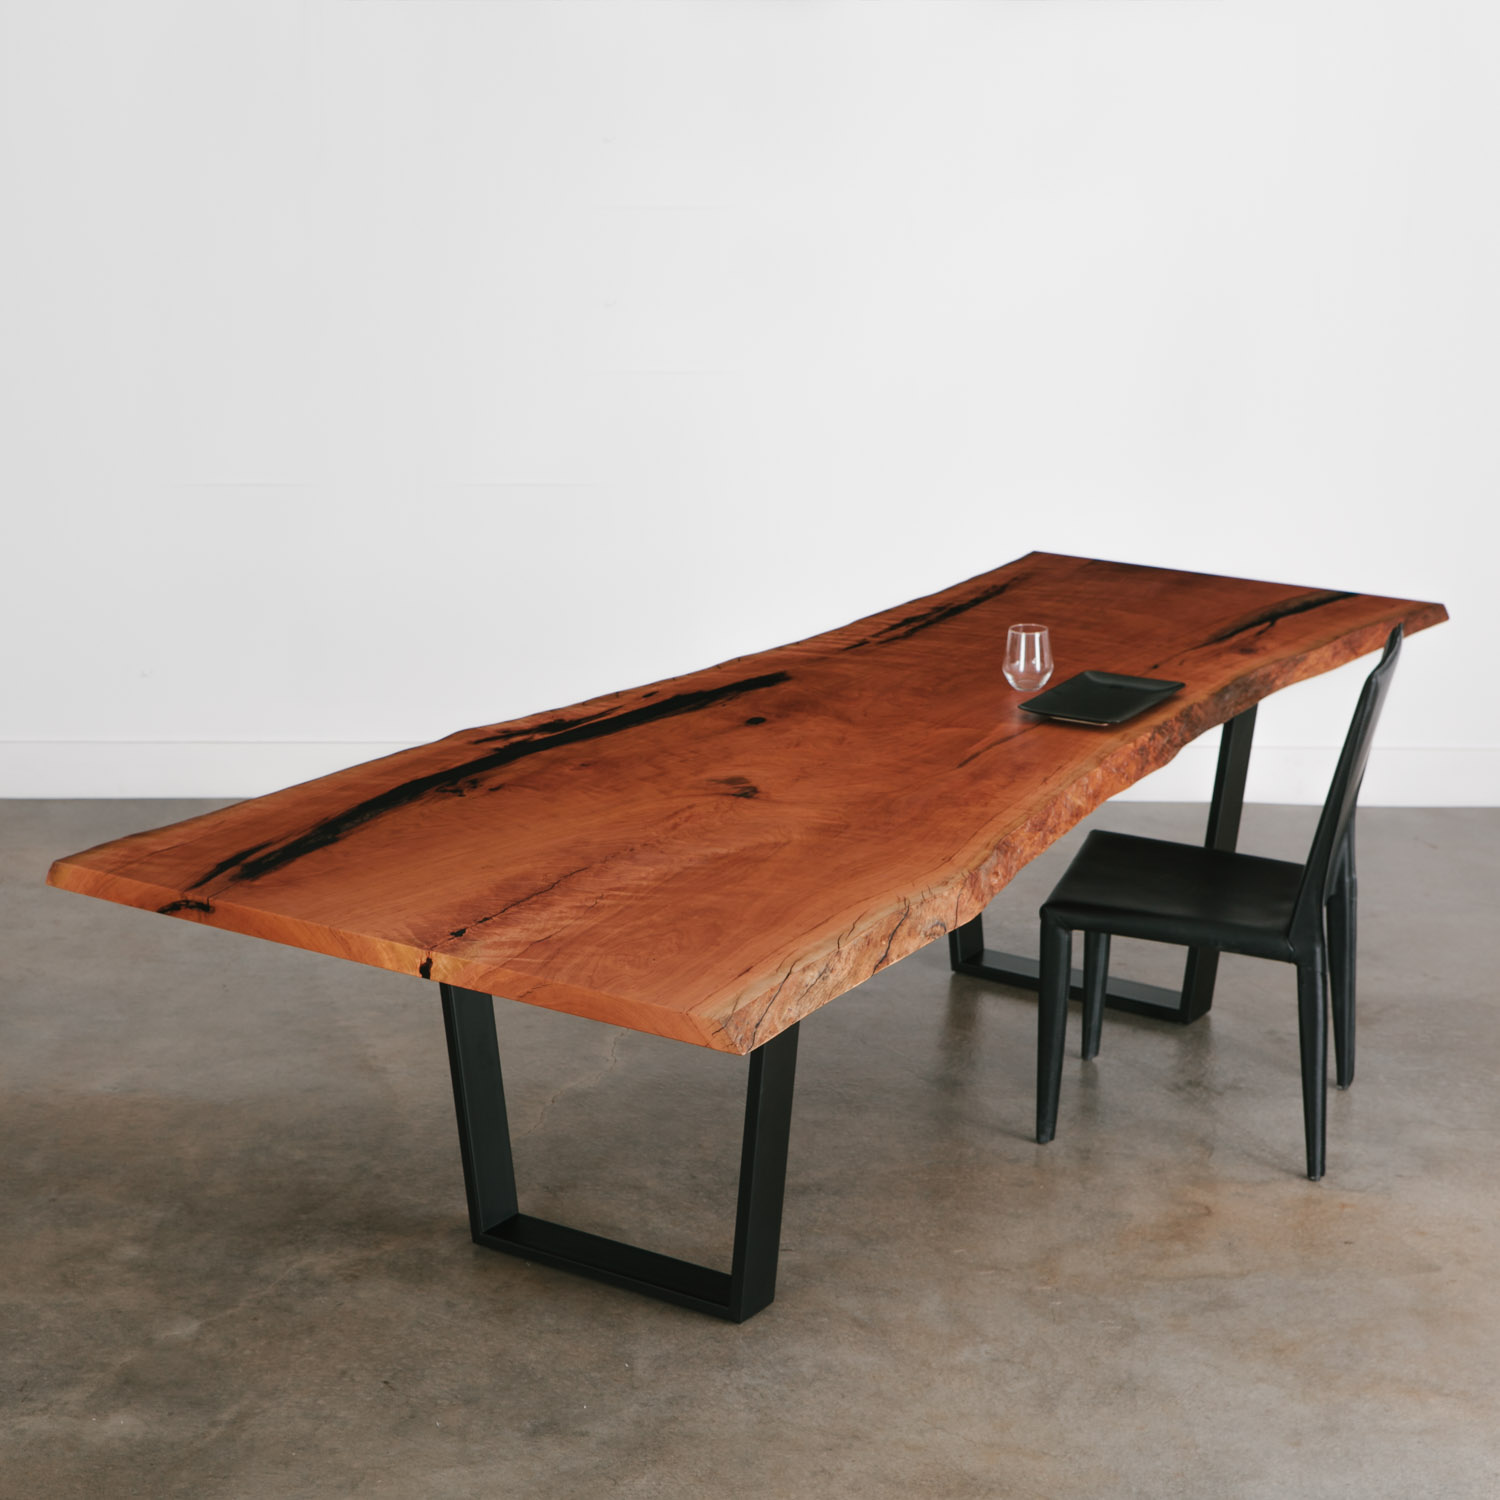 Trendy cherry slab live edge table